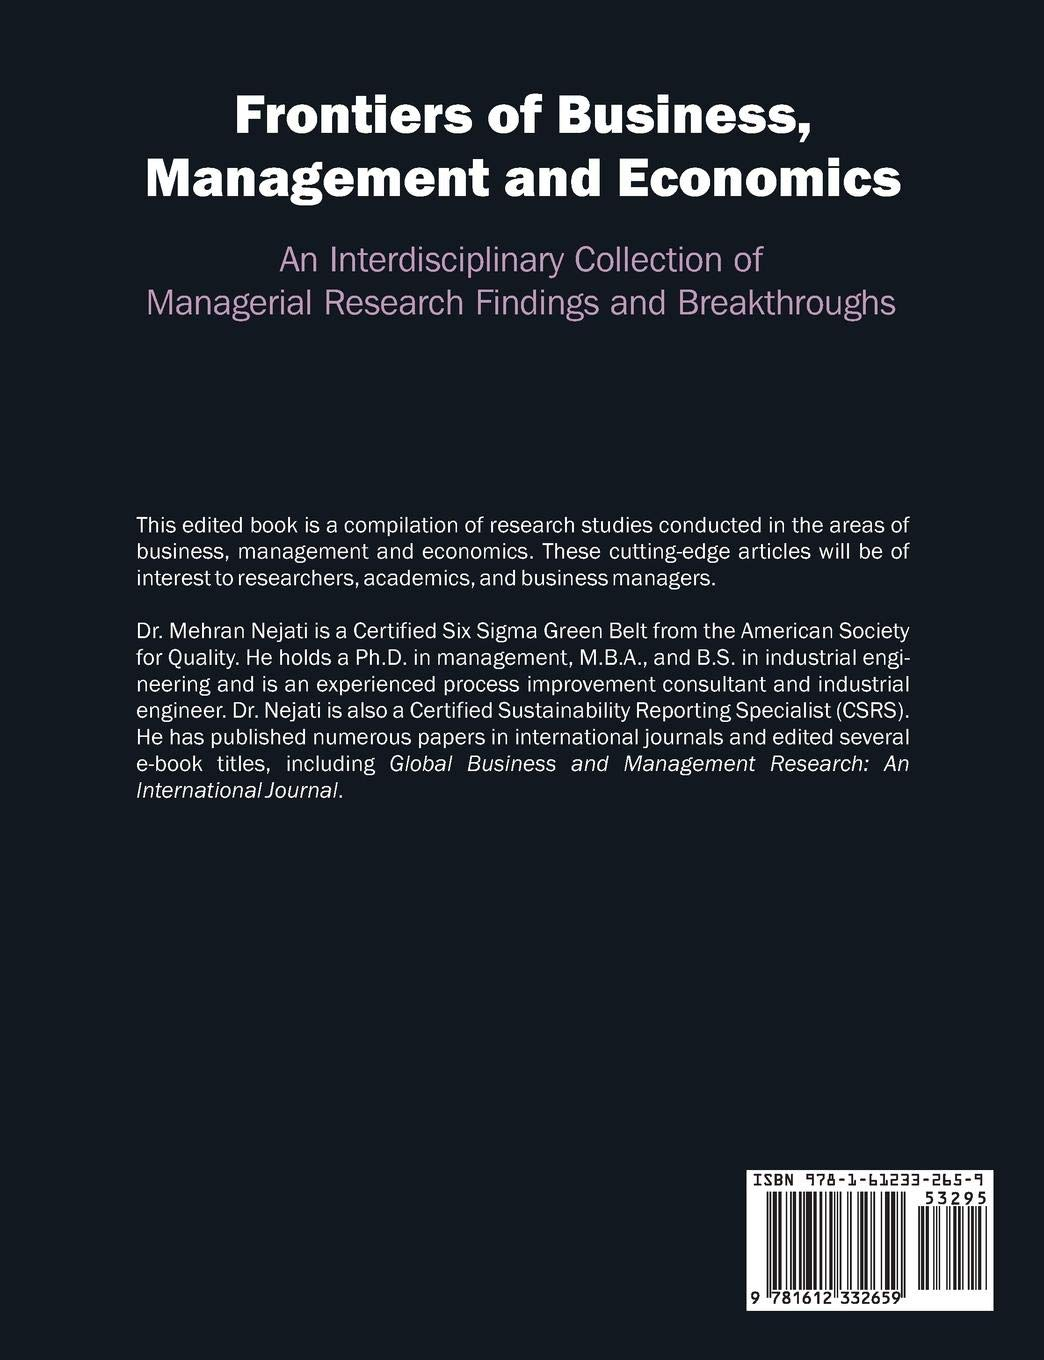 Frontiers of Business, Management and Economics: An